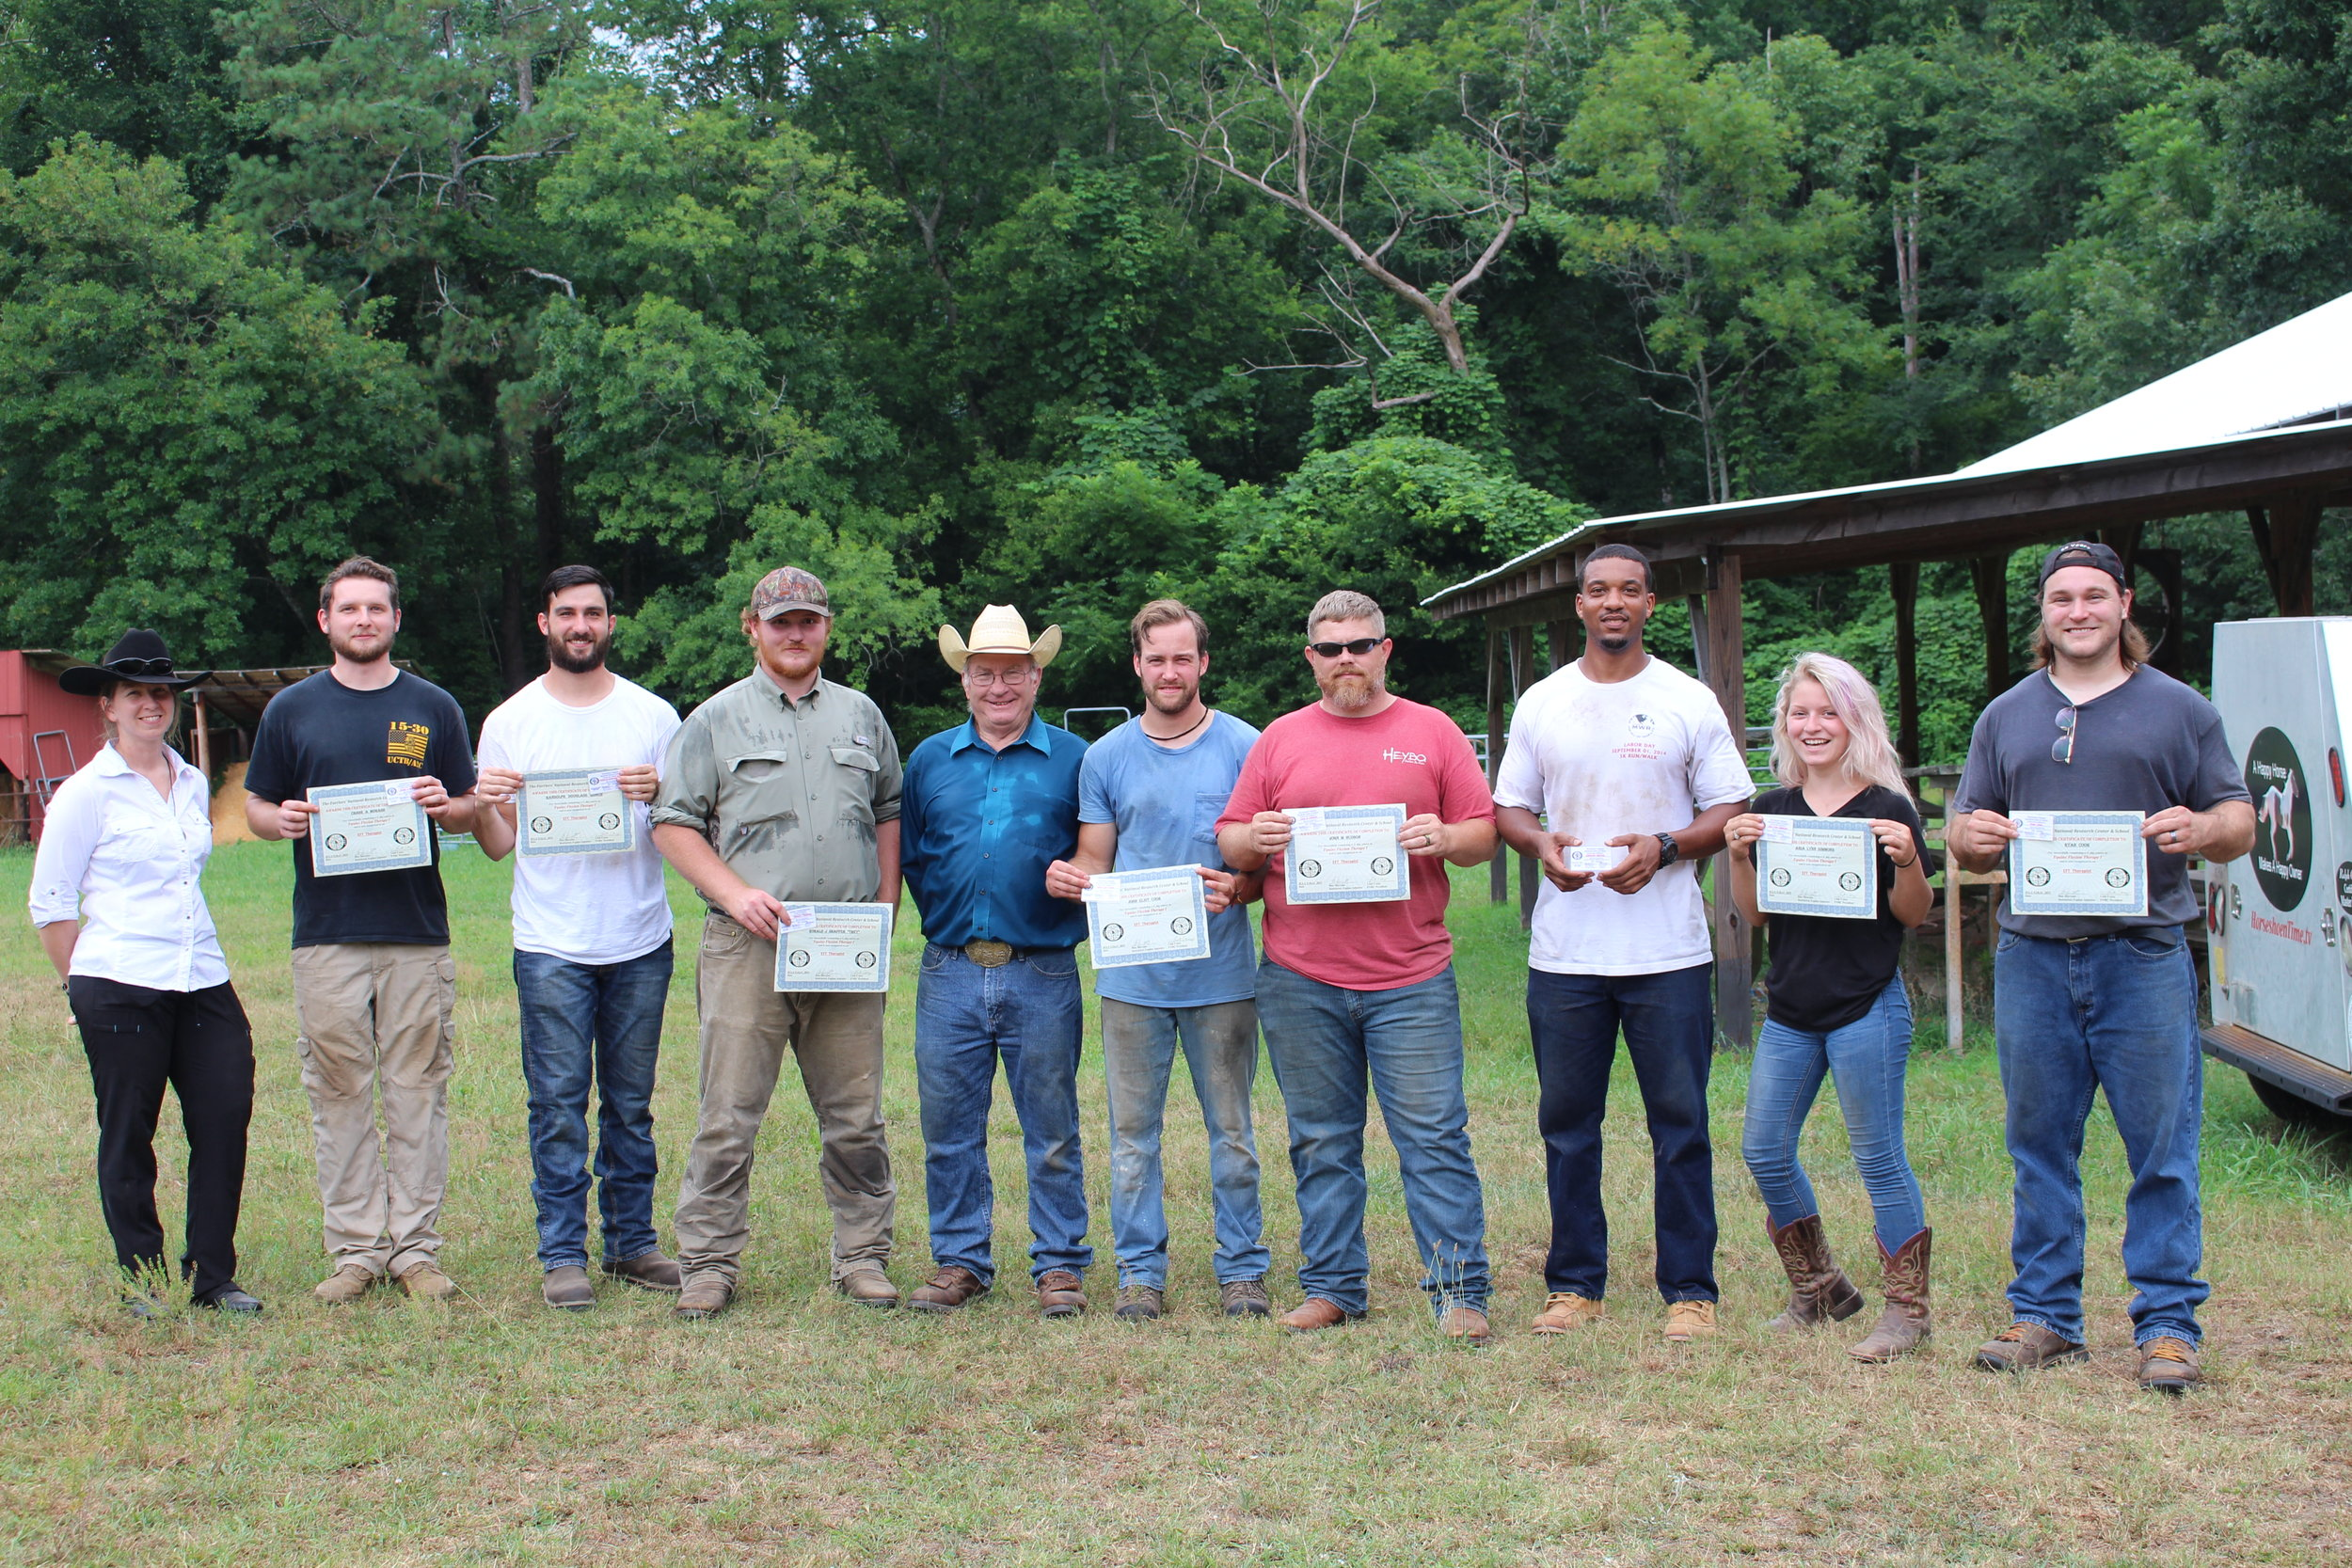 EFT Graduate Students with Dan Marcum, EFT Instructor,Farrier & Daniela Schatz EFT certified,  FNRC, GA 7.11.19.JPG